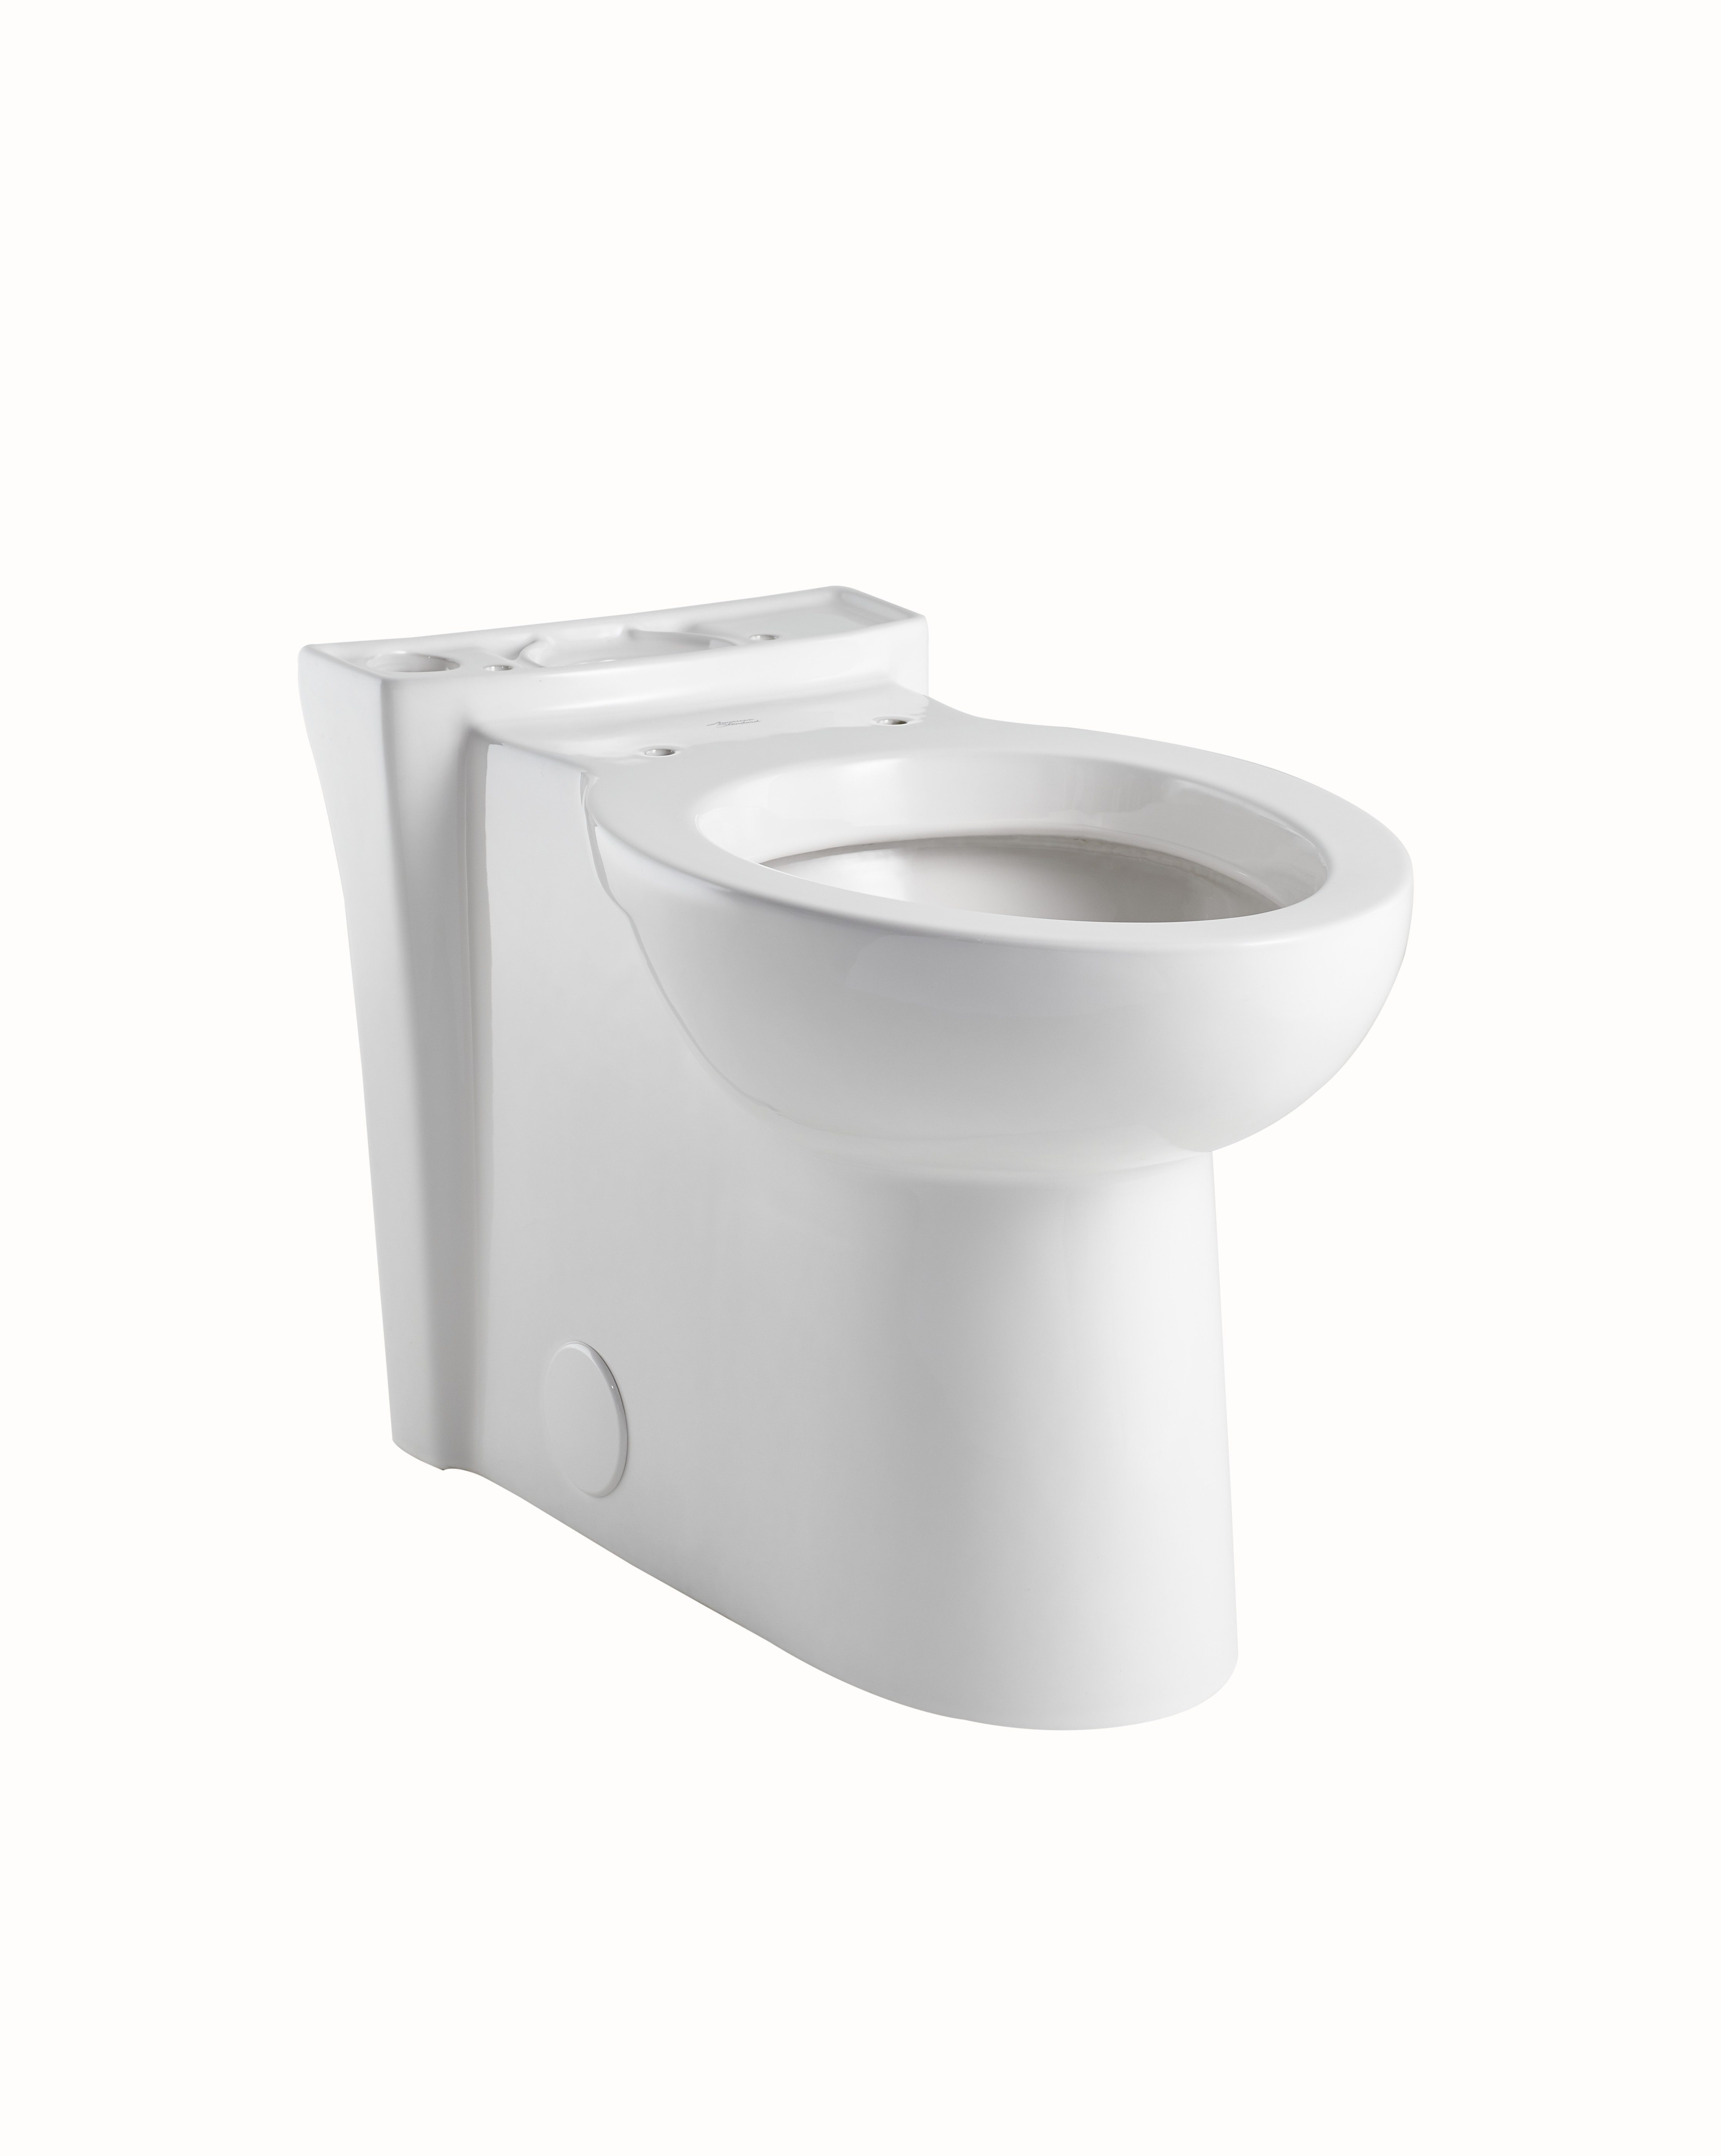 American Standard 3075.000.020 Cadet® 3 Right Height™ Toilet Bowl, Elongated, 8 x 9 in Water Surface, 16-1/2 in H Rim, Import